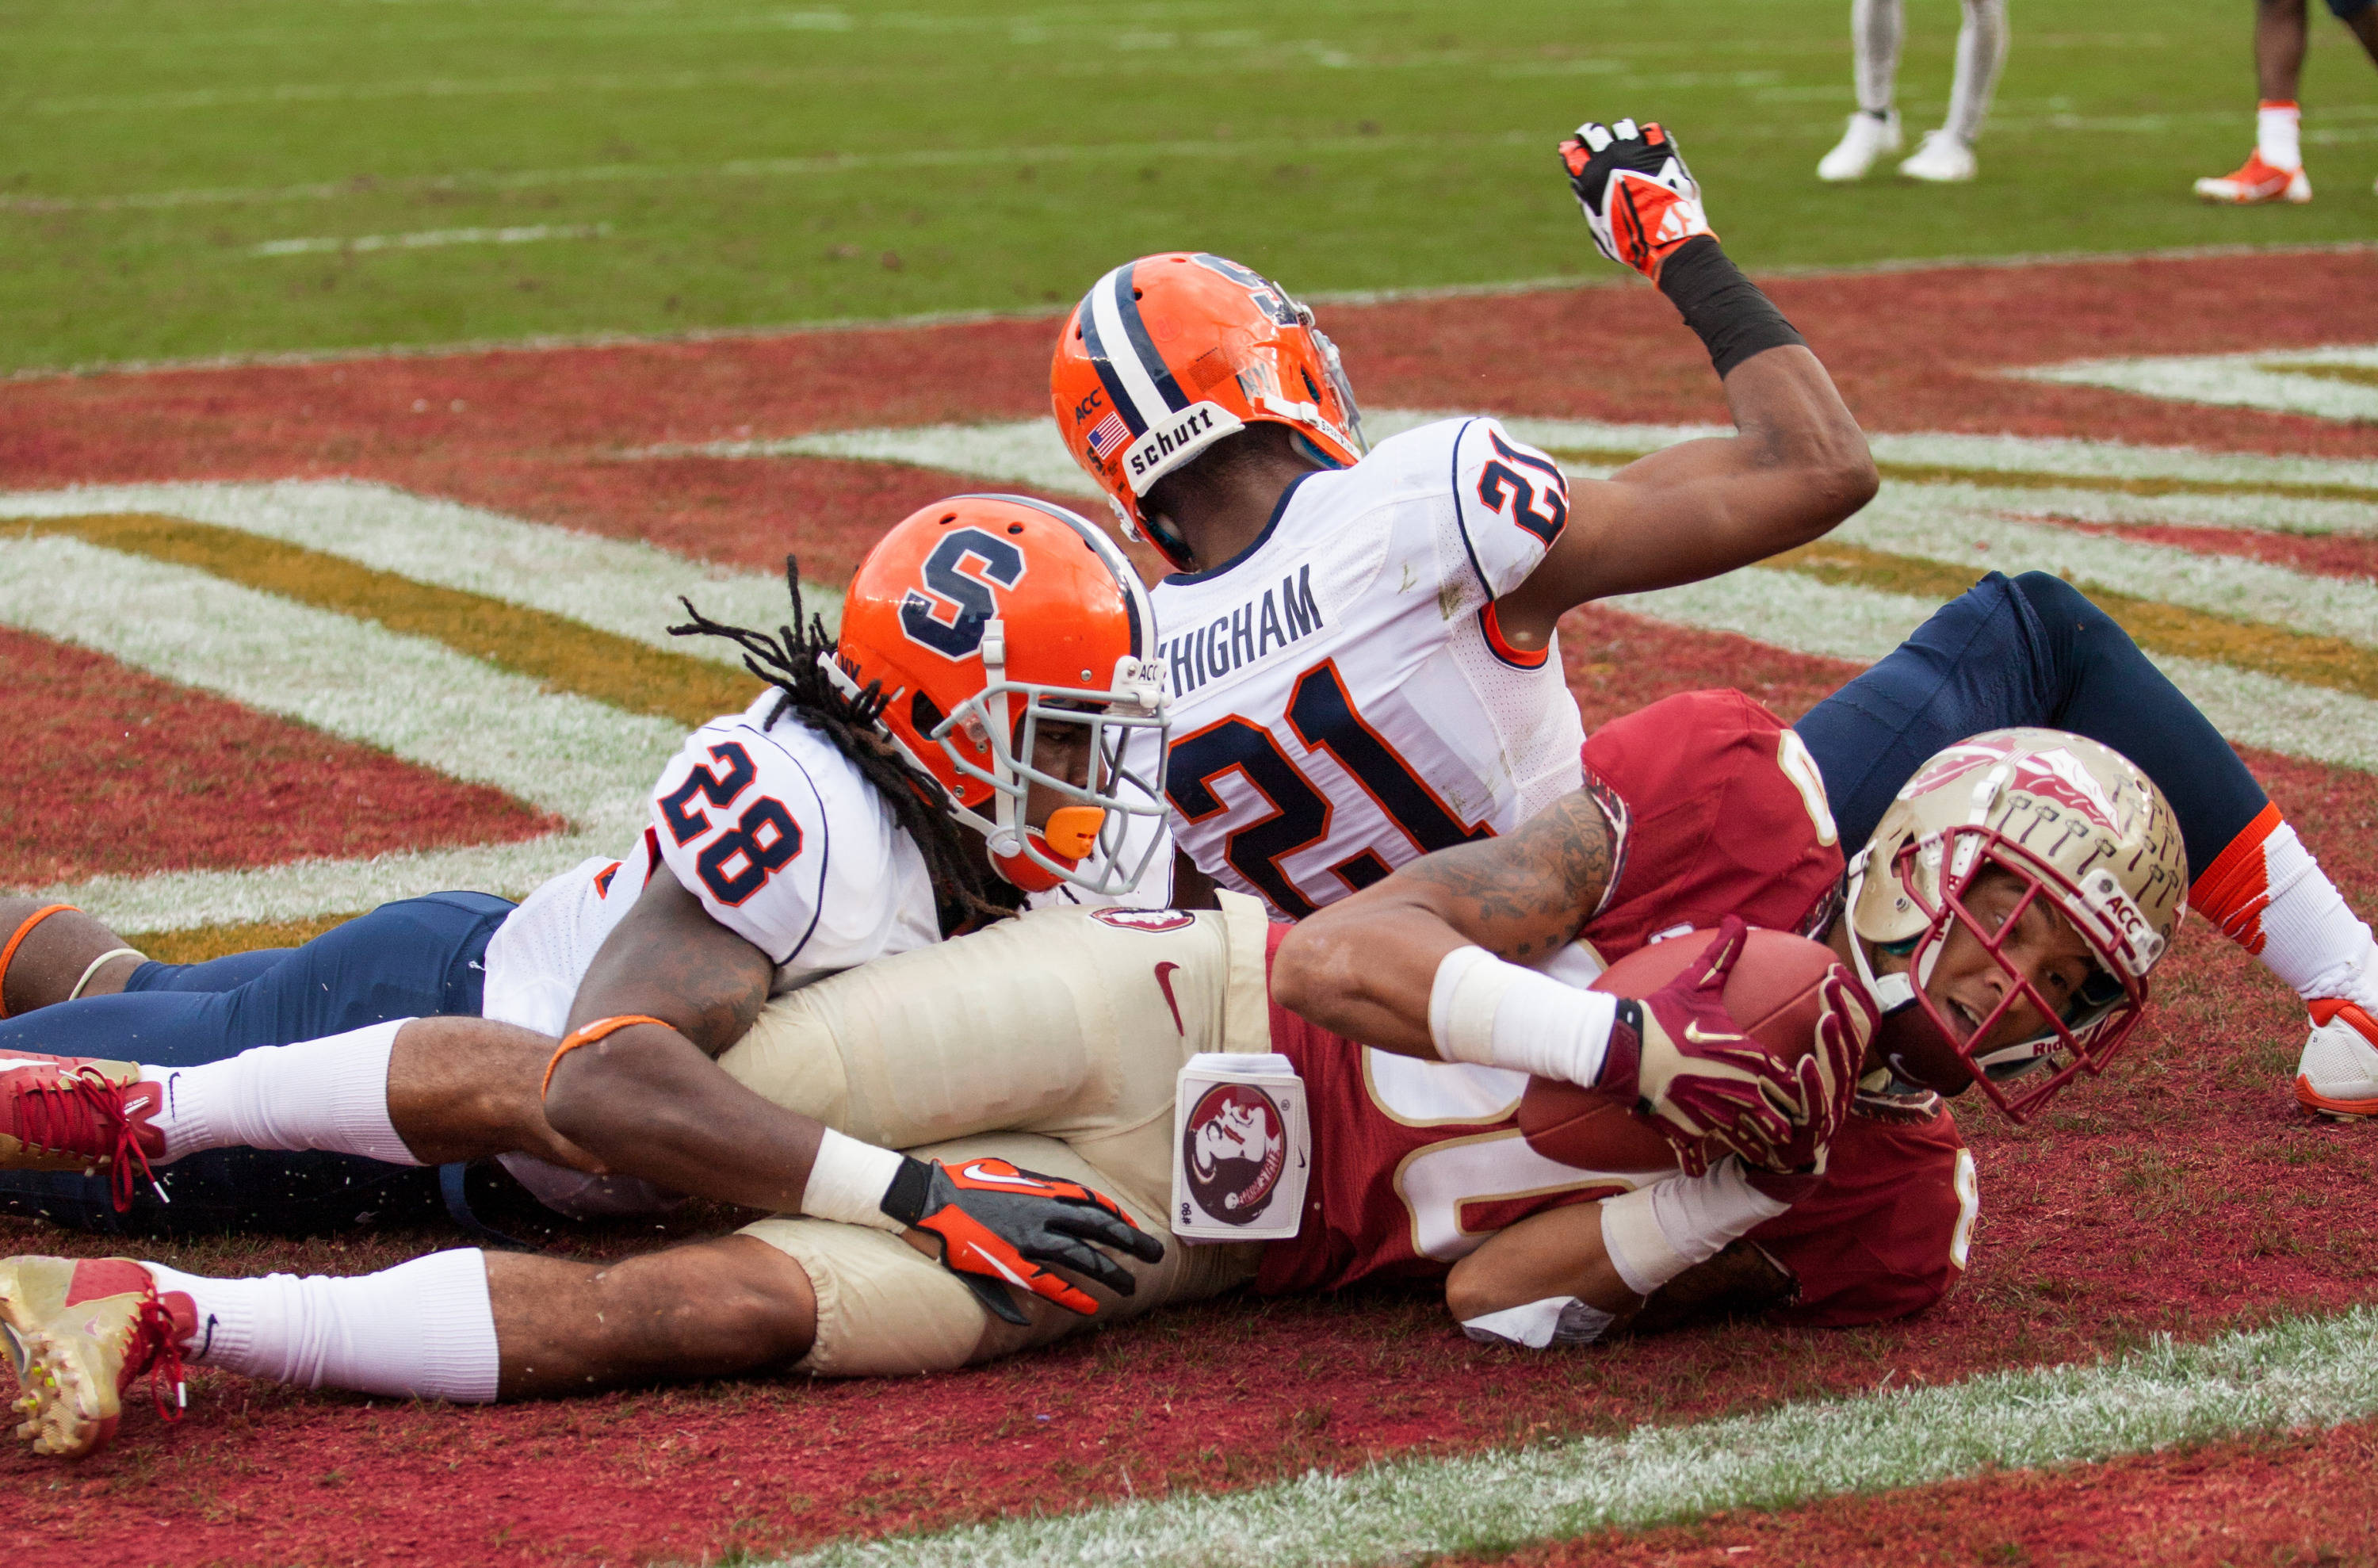 Rashad Greene (80) scores a touchdown during FSU Football's 59-3 win over Syracuse on Saturday, November 16, 2013 in Tallahassee, Fla. Photo by Mike Schwarz.